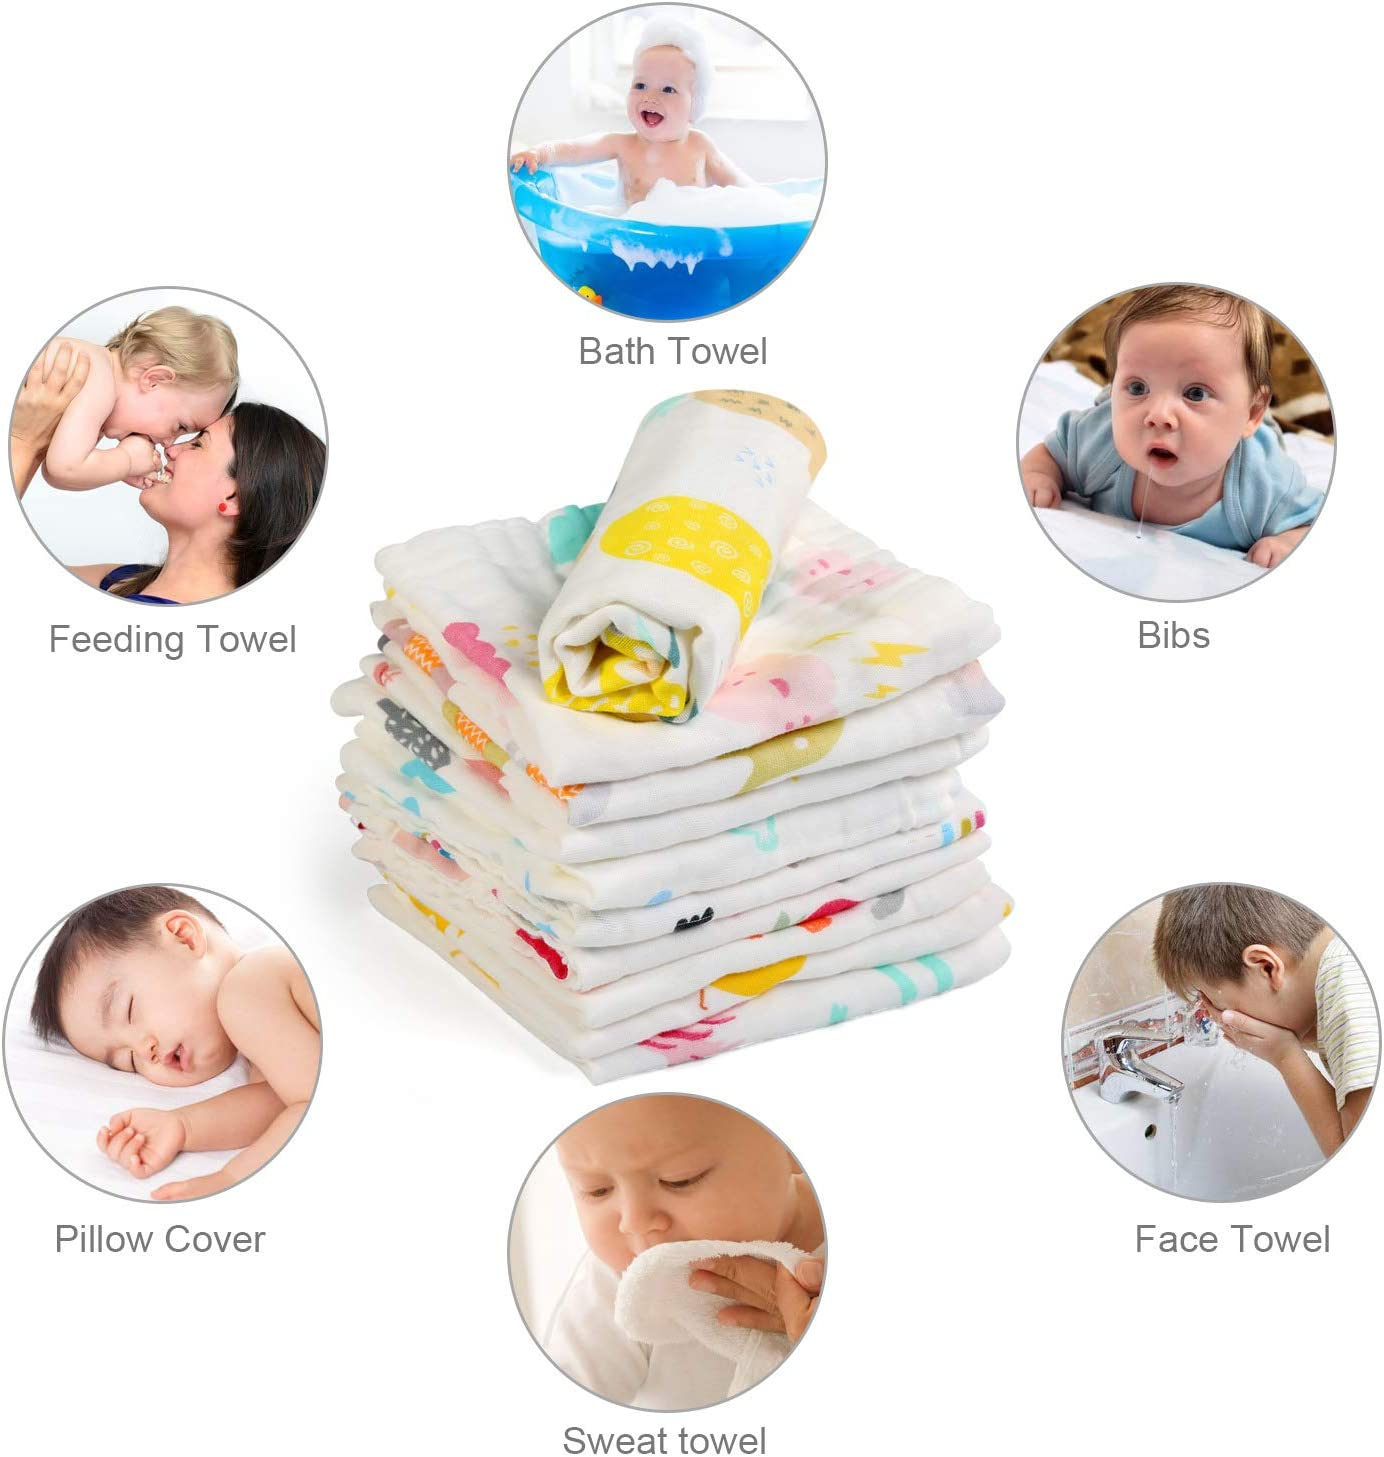 NEWSTYLE 10Pcs Muslin Washcloths Cotton Natural Baby Towels with Printed Design Soft Newborn Baby Face Towel for Sensitive Skin Baby 30 x 30cm